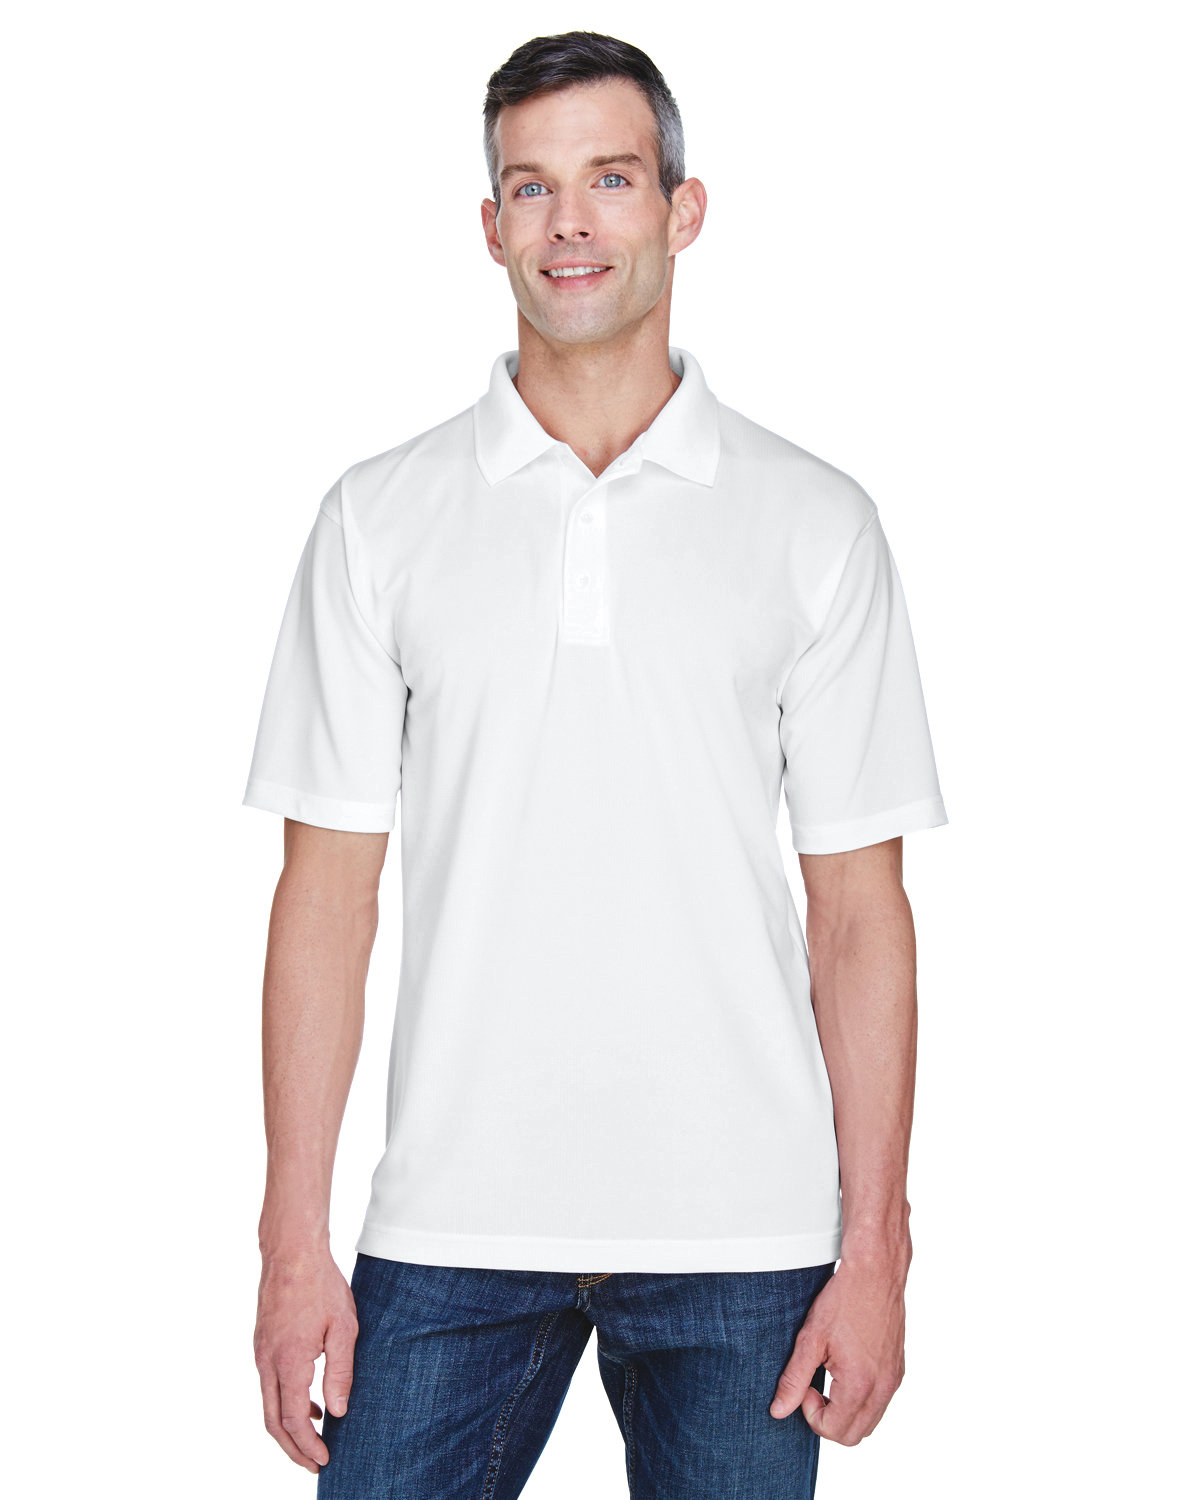 UltraClub Men's Cool & Dry Stain-Release Performance Polo WHITE